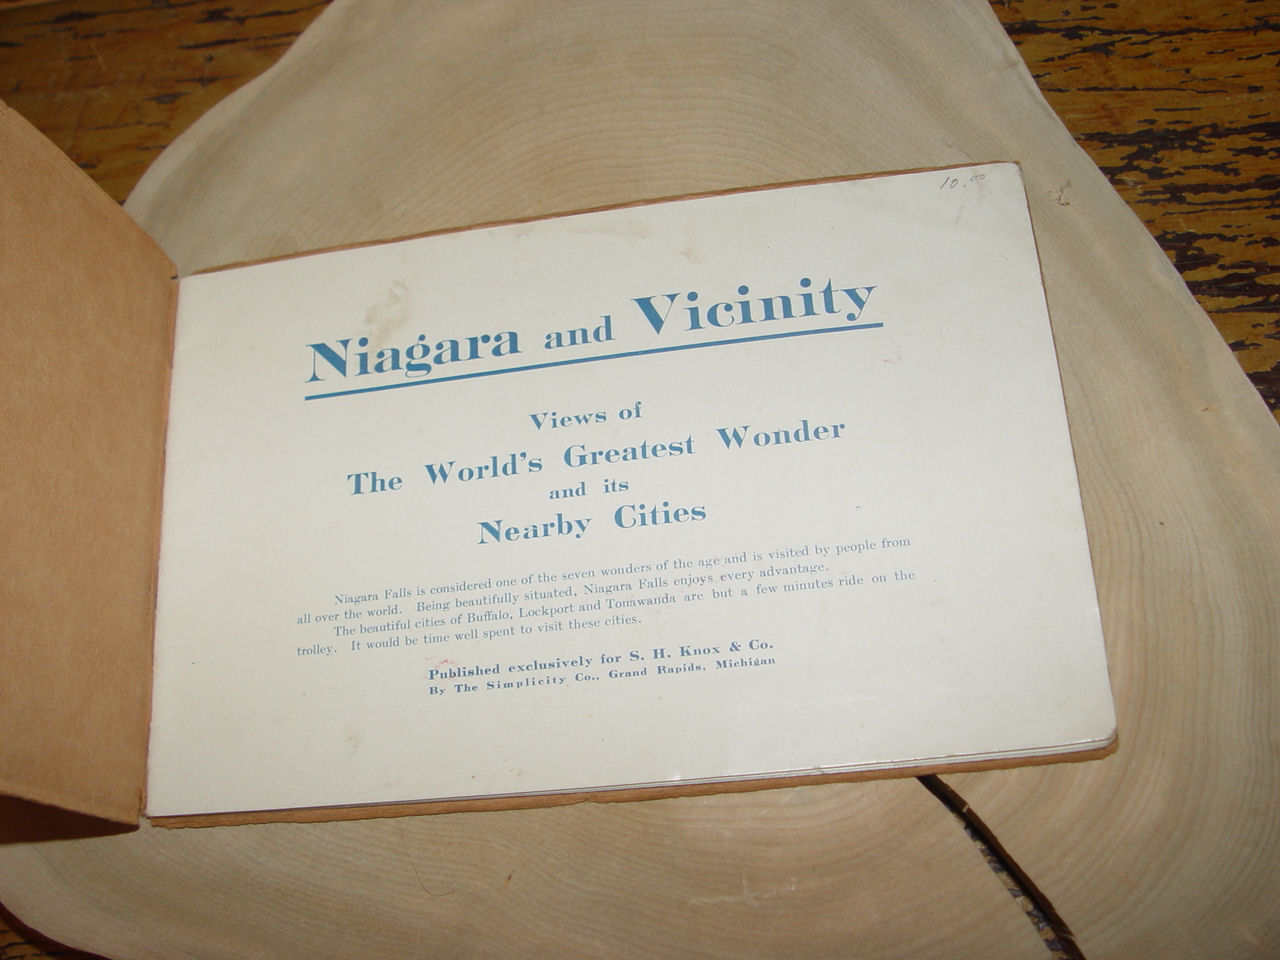 Niagara and                                         vicinity : views of the world's                                         greatest wonder and its nearby                                         cities. -- (1902) Travel Guide